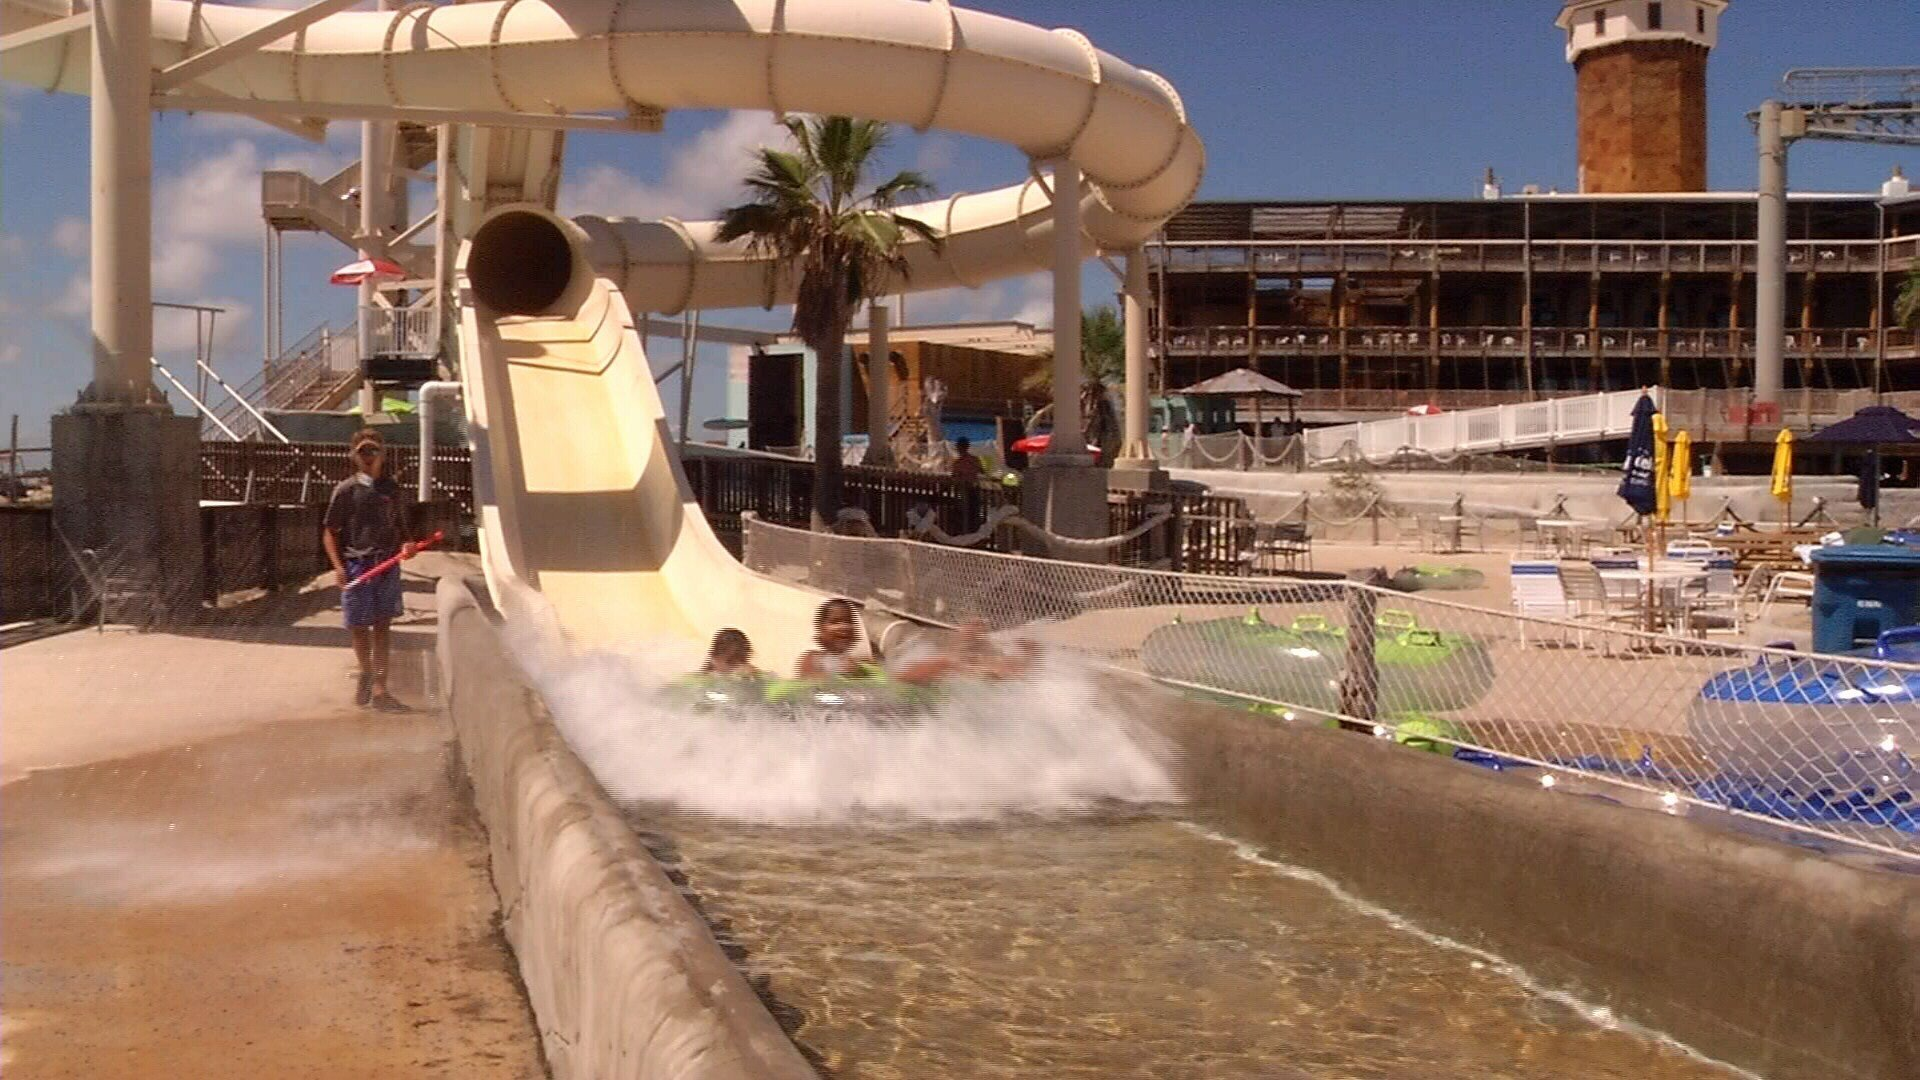 With nearly 270 acres around the Schlitterbahn water park in foreclosure, some wonder what could happen to the taxpayer incentives pledged for the project. (KRIS 6 News)